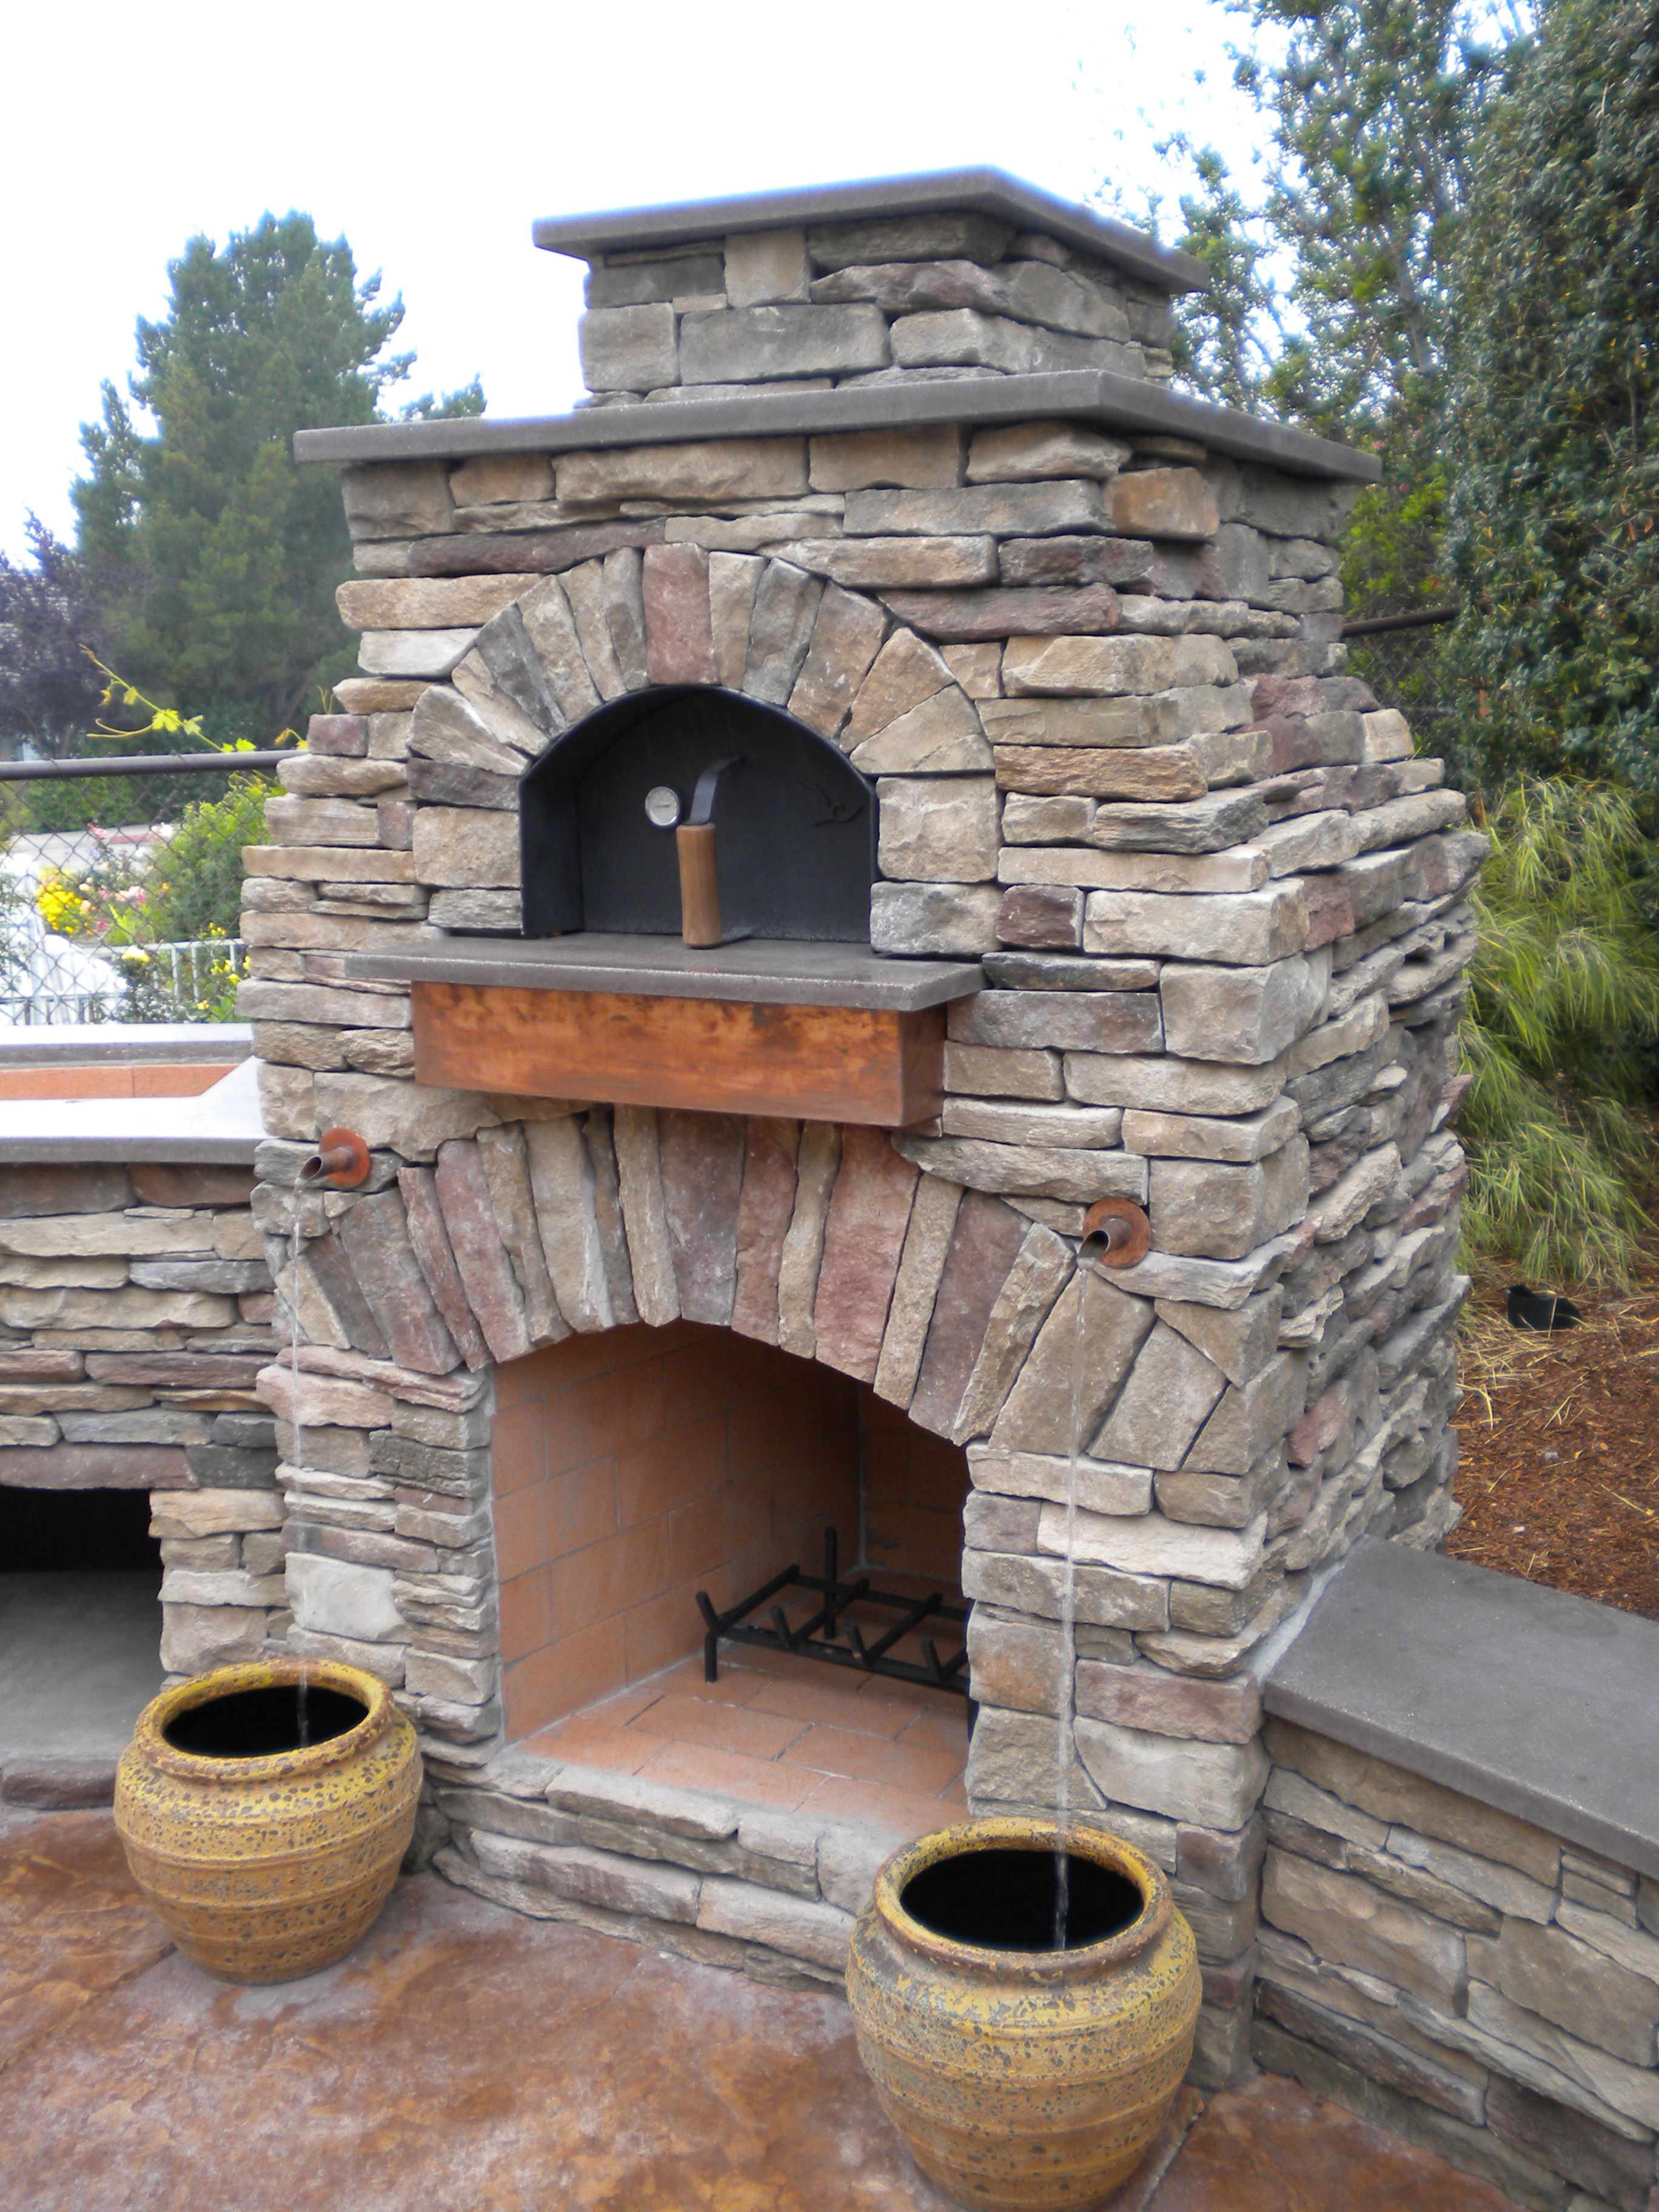 pizza blytheprojects outside ideas oven designs and fireplace flickering flaming build outdoor home hearth